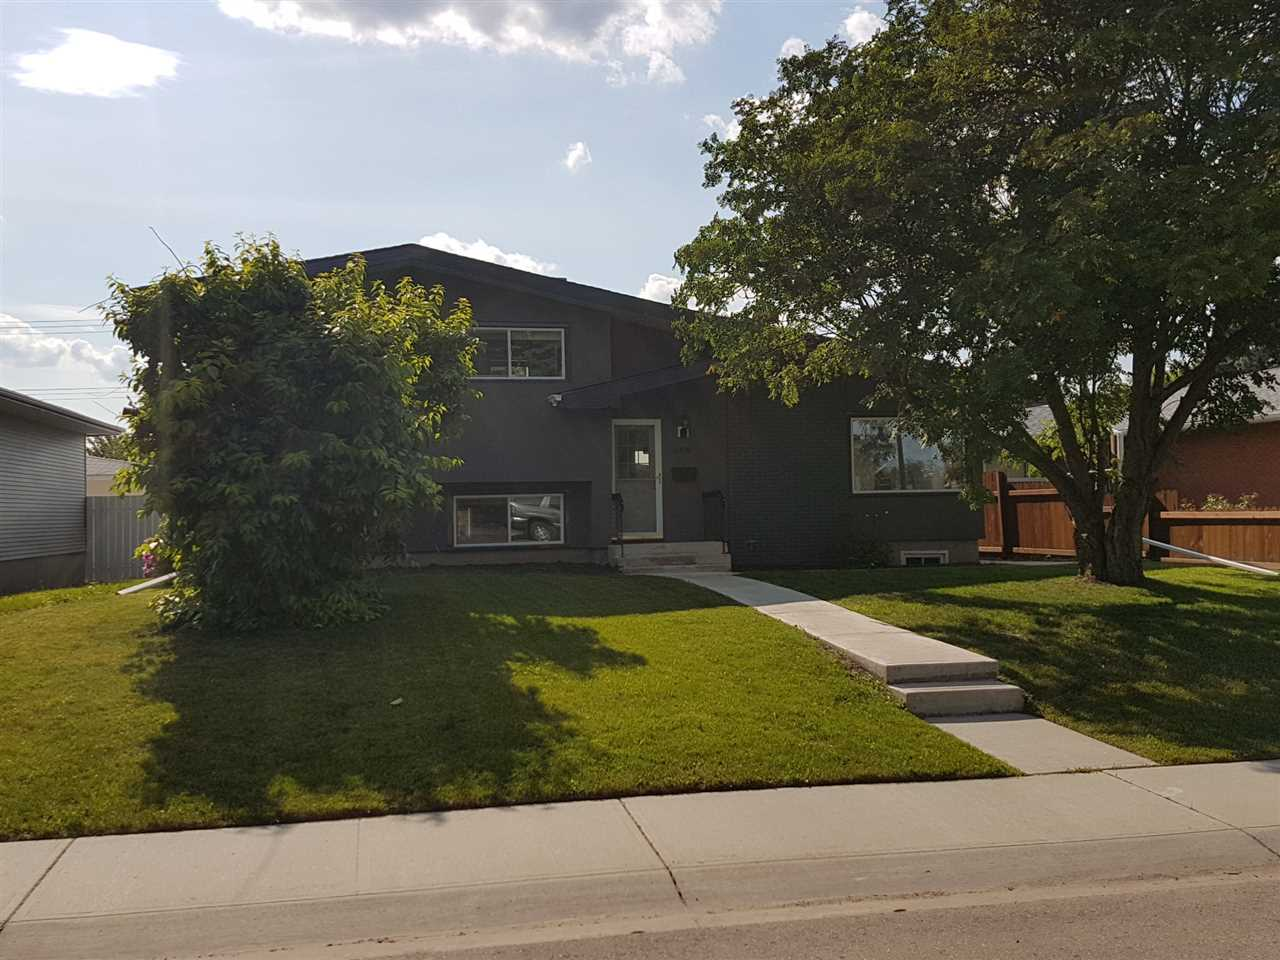 Main Photo: 5216 114B Street in Edmonton: Zone 15 House for sale : MLS® # E4071483